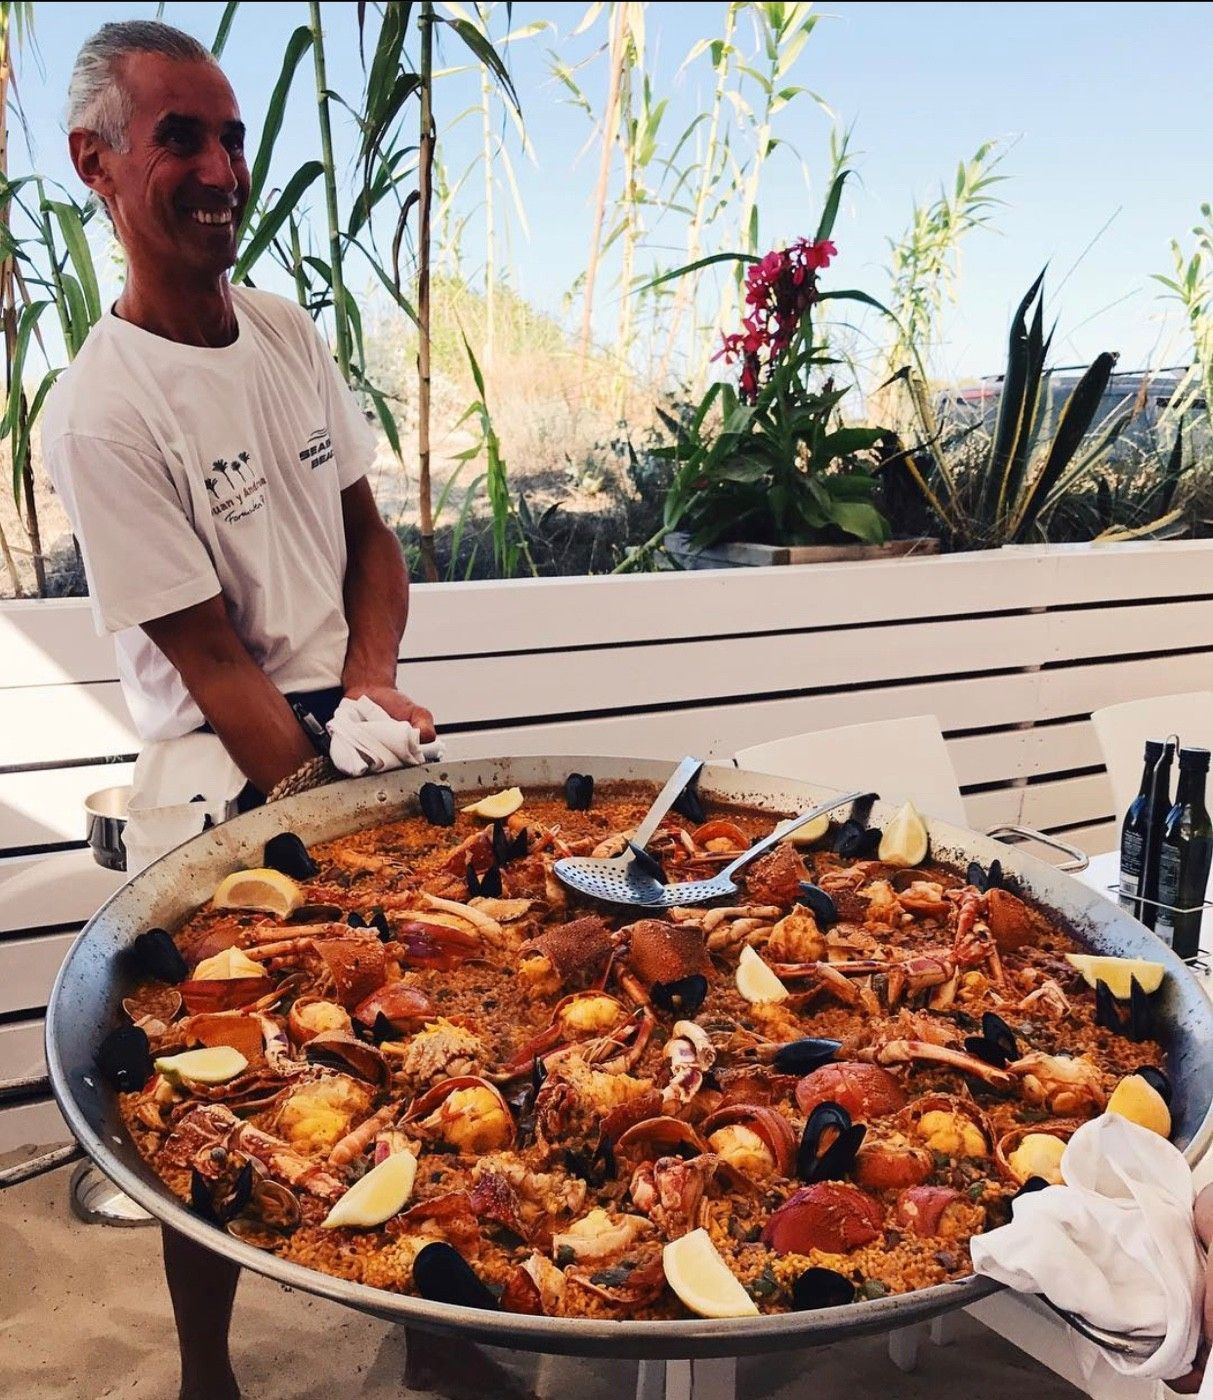 Click to see the full Paella plate!